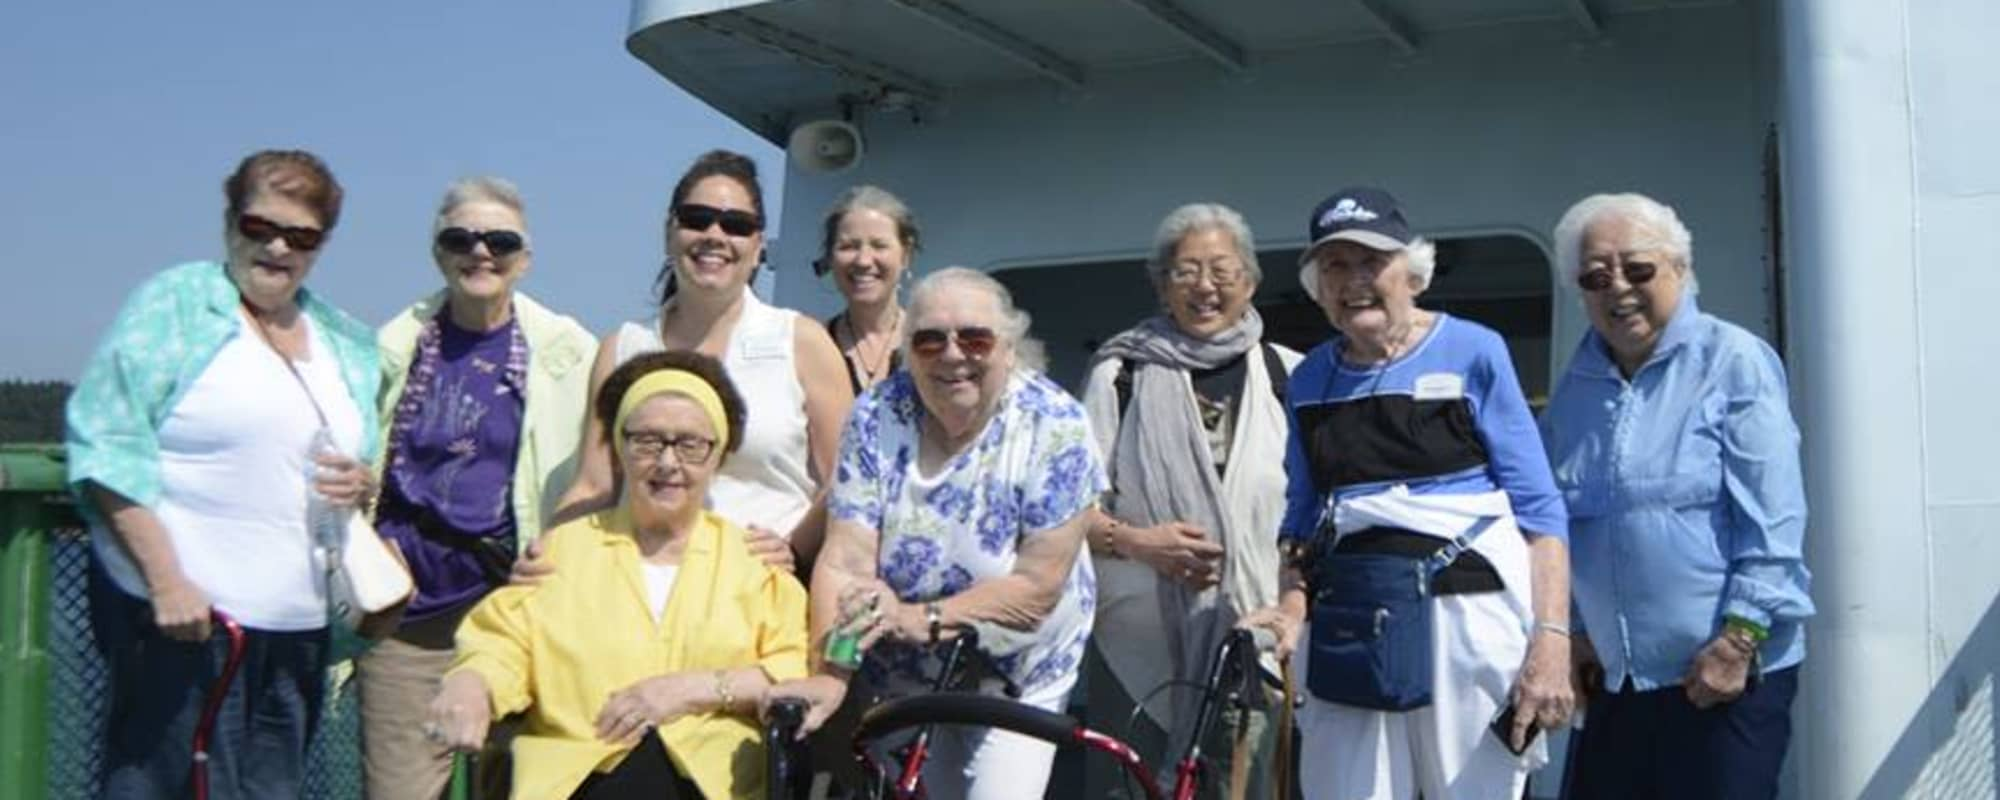 Seniors from Northgate Plaza take a ferry ride in Seattle, Washington